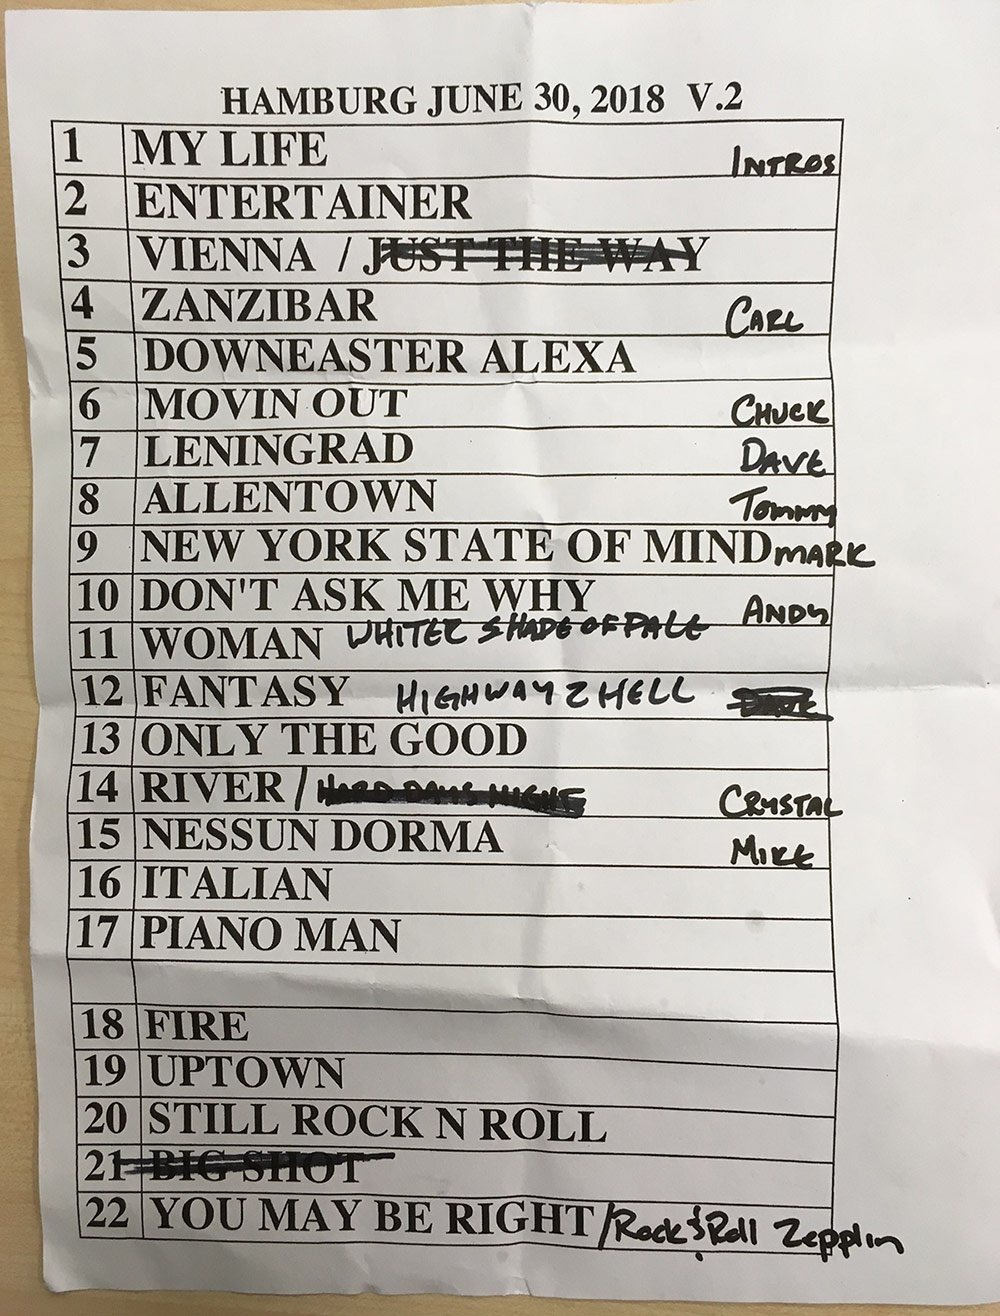 Set list from Billy Joel concert Hamburg Volksparkstadion in Hamburg, Germany June 30, 2018